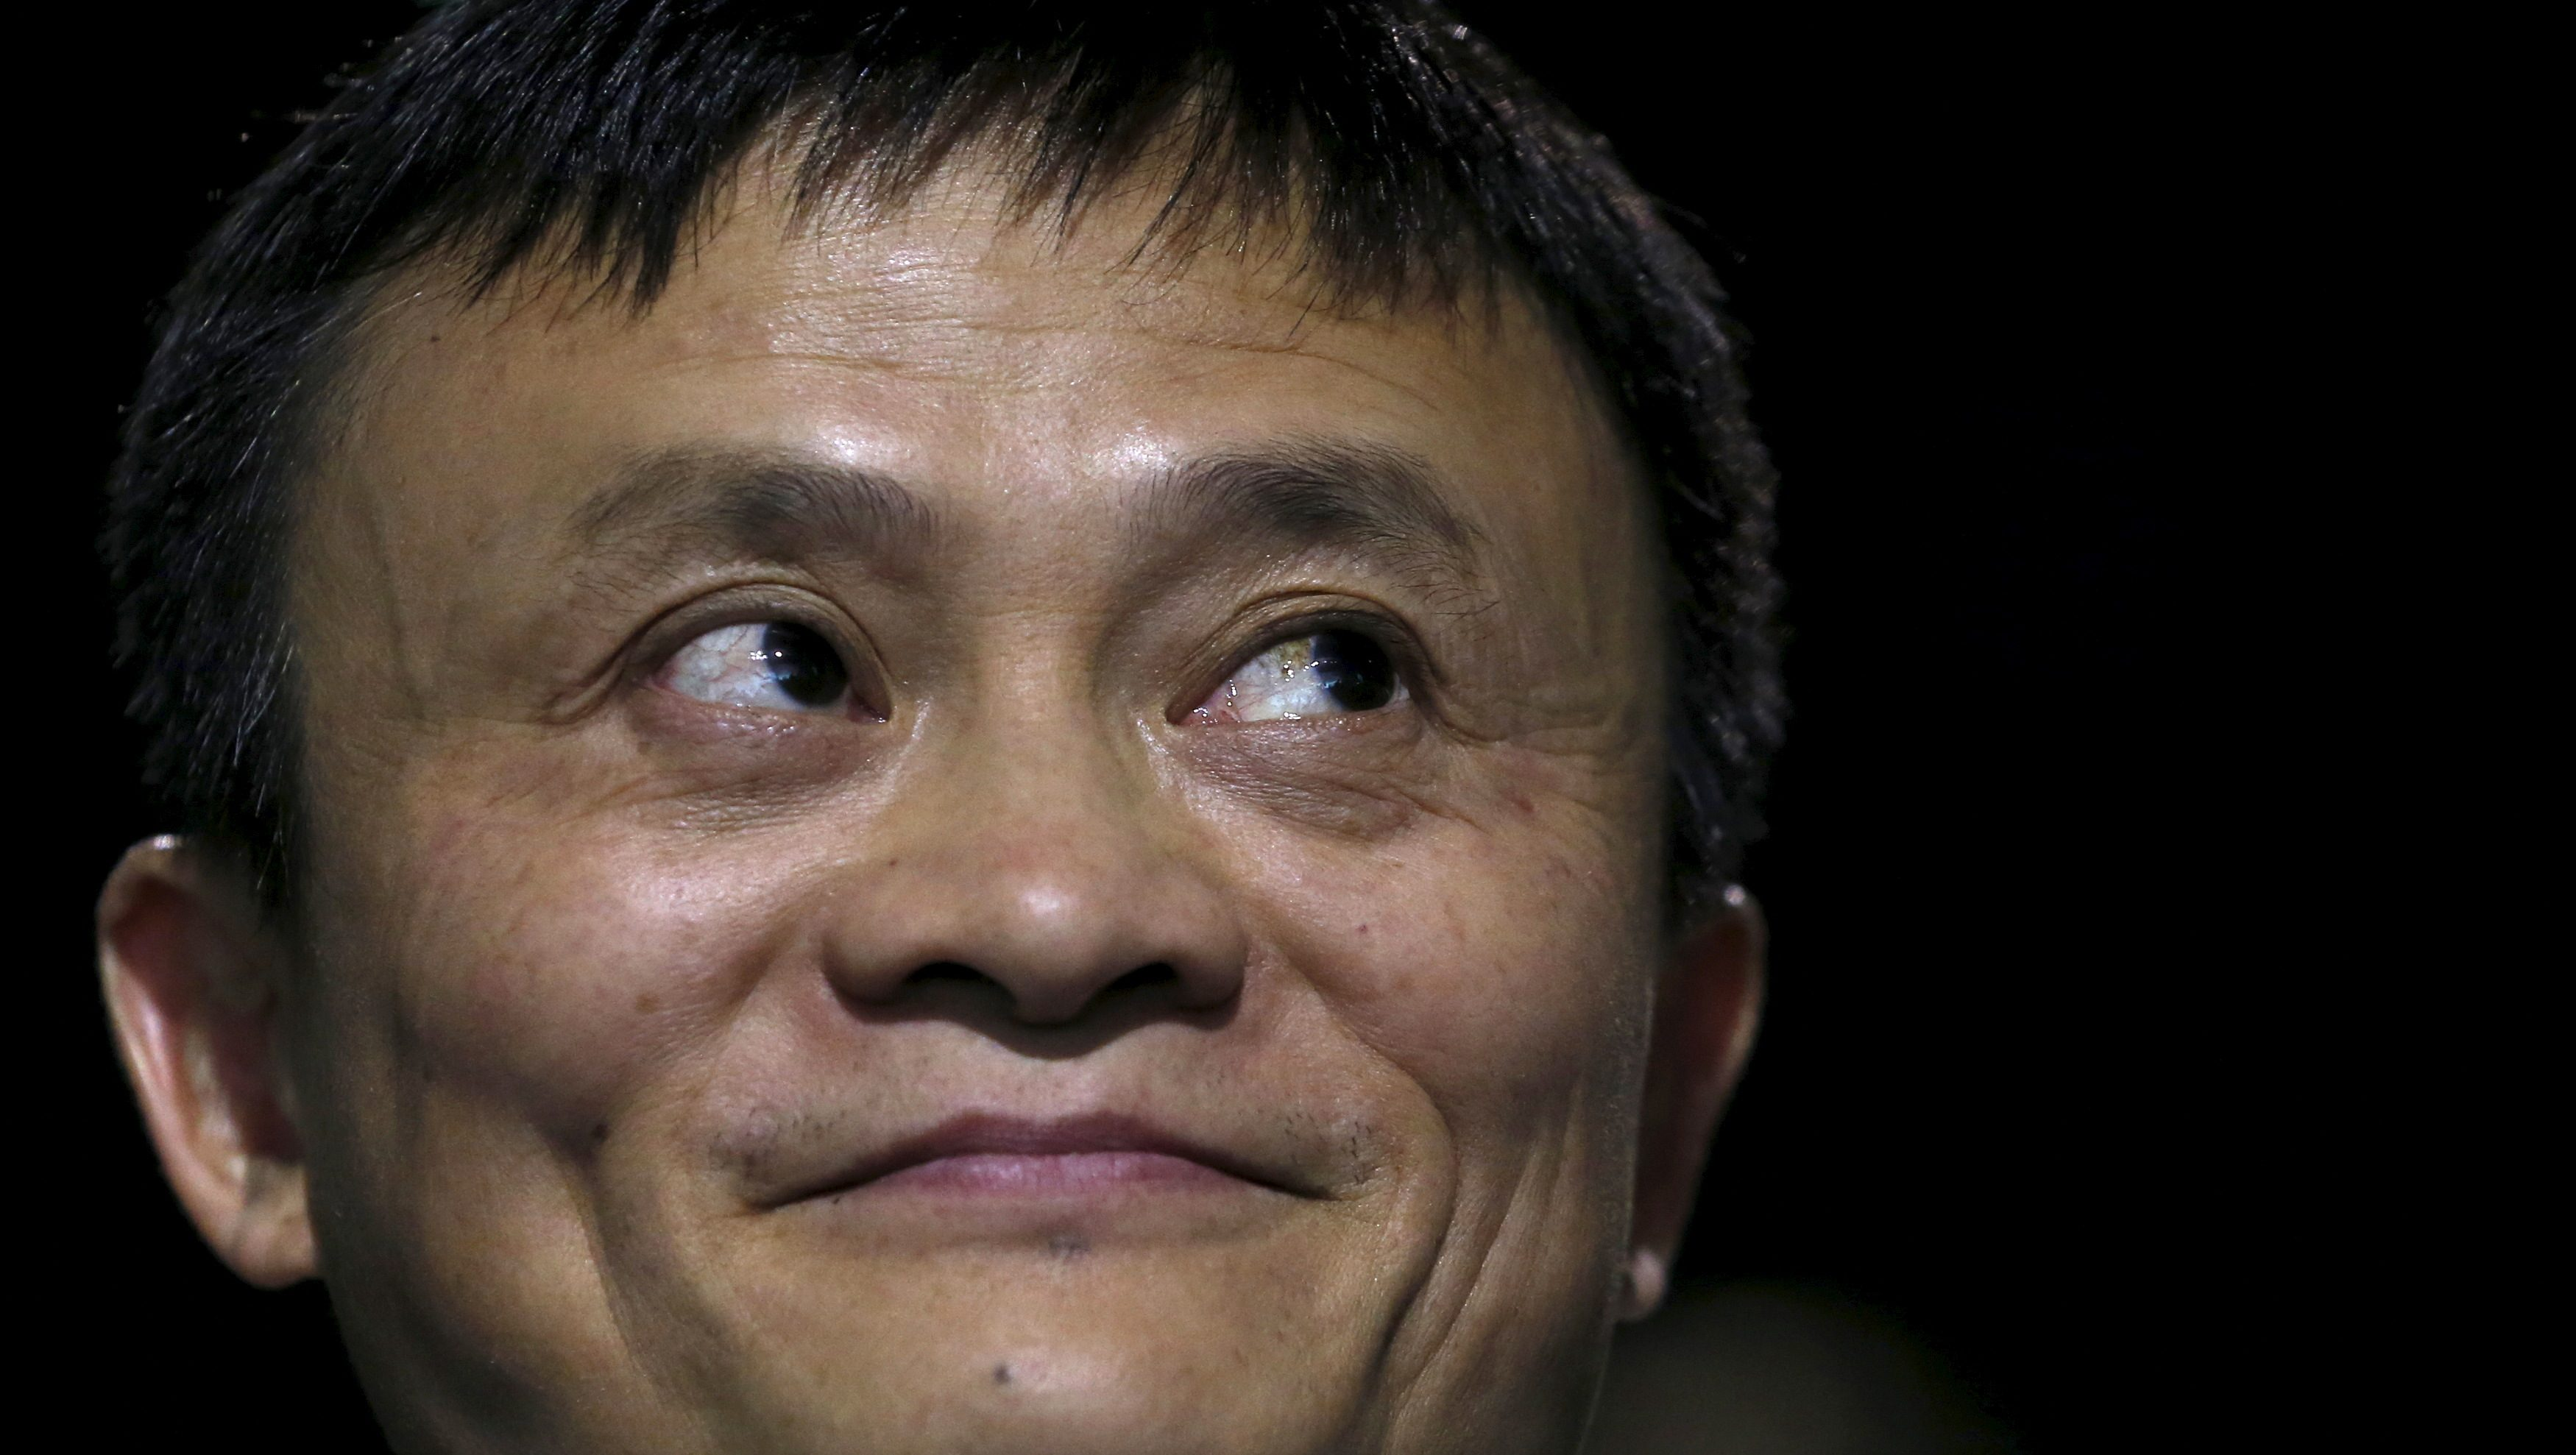 Alibaba Executive Chairman Jack Ma attends the World Climate Change Conference 2015 (COP21) at Le Bourget, near Paris, France, December 5, 2015.